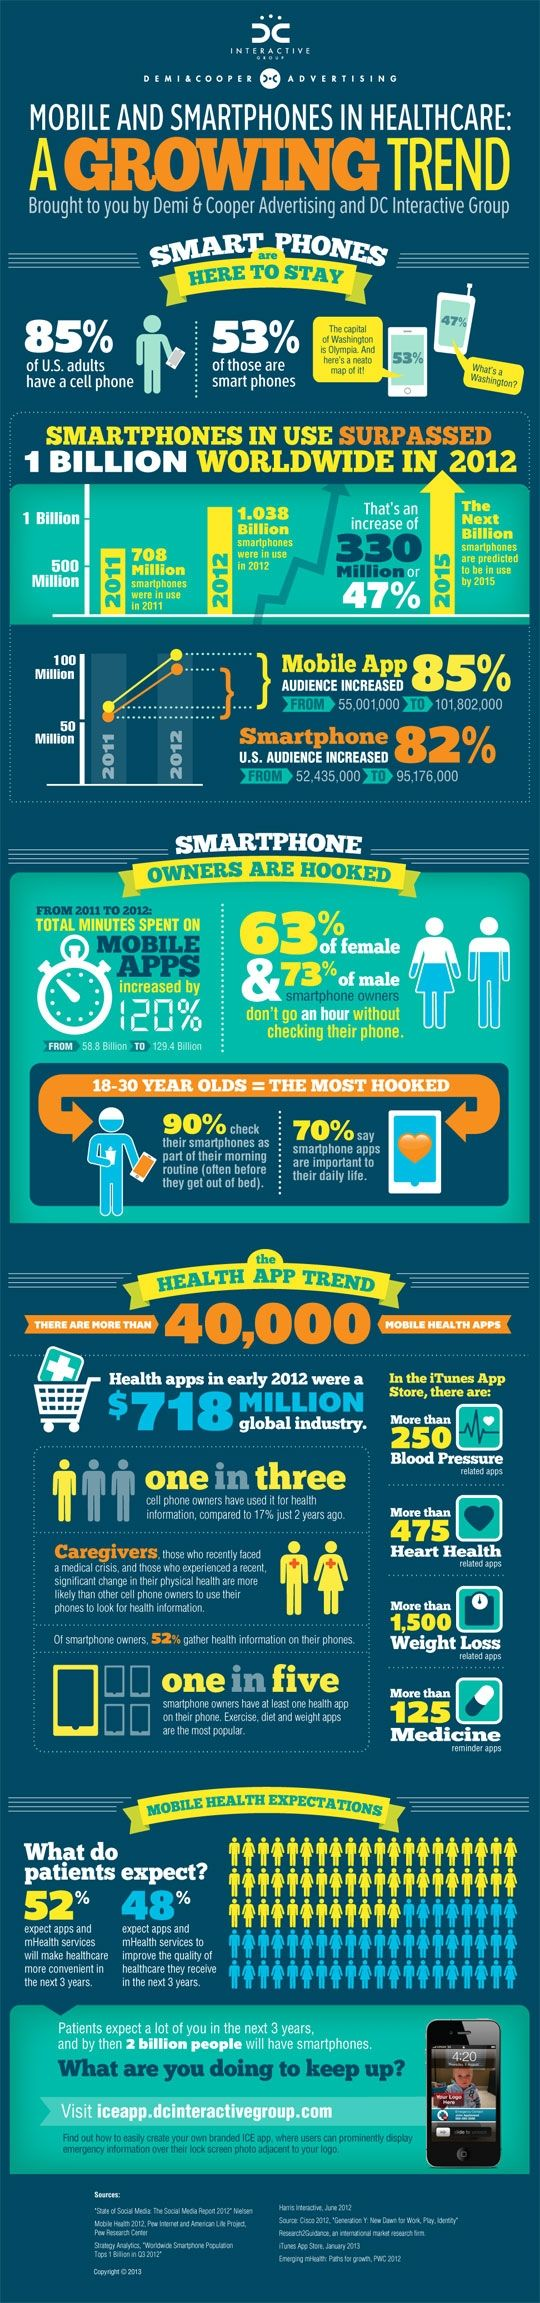 Infographic-Health-Apps-Will-Skyrocket-in-the-Next-Three-Years